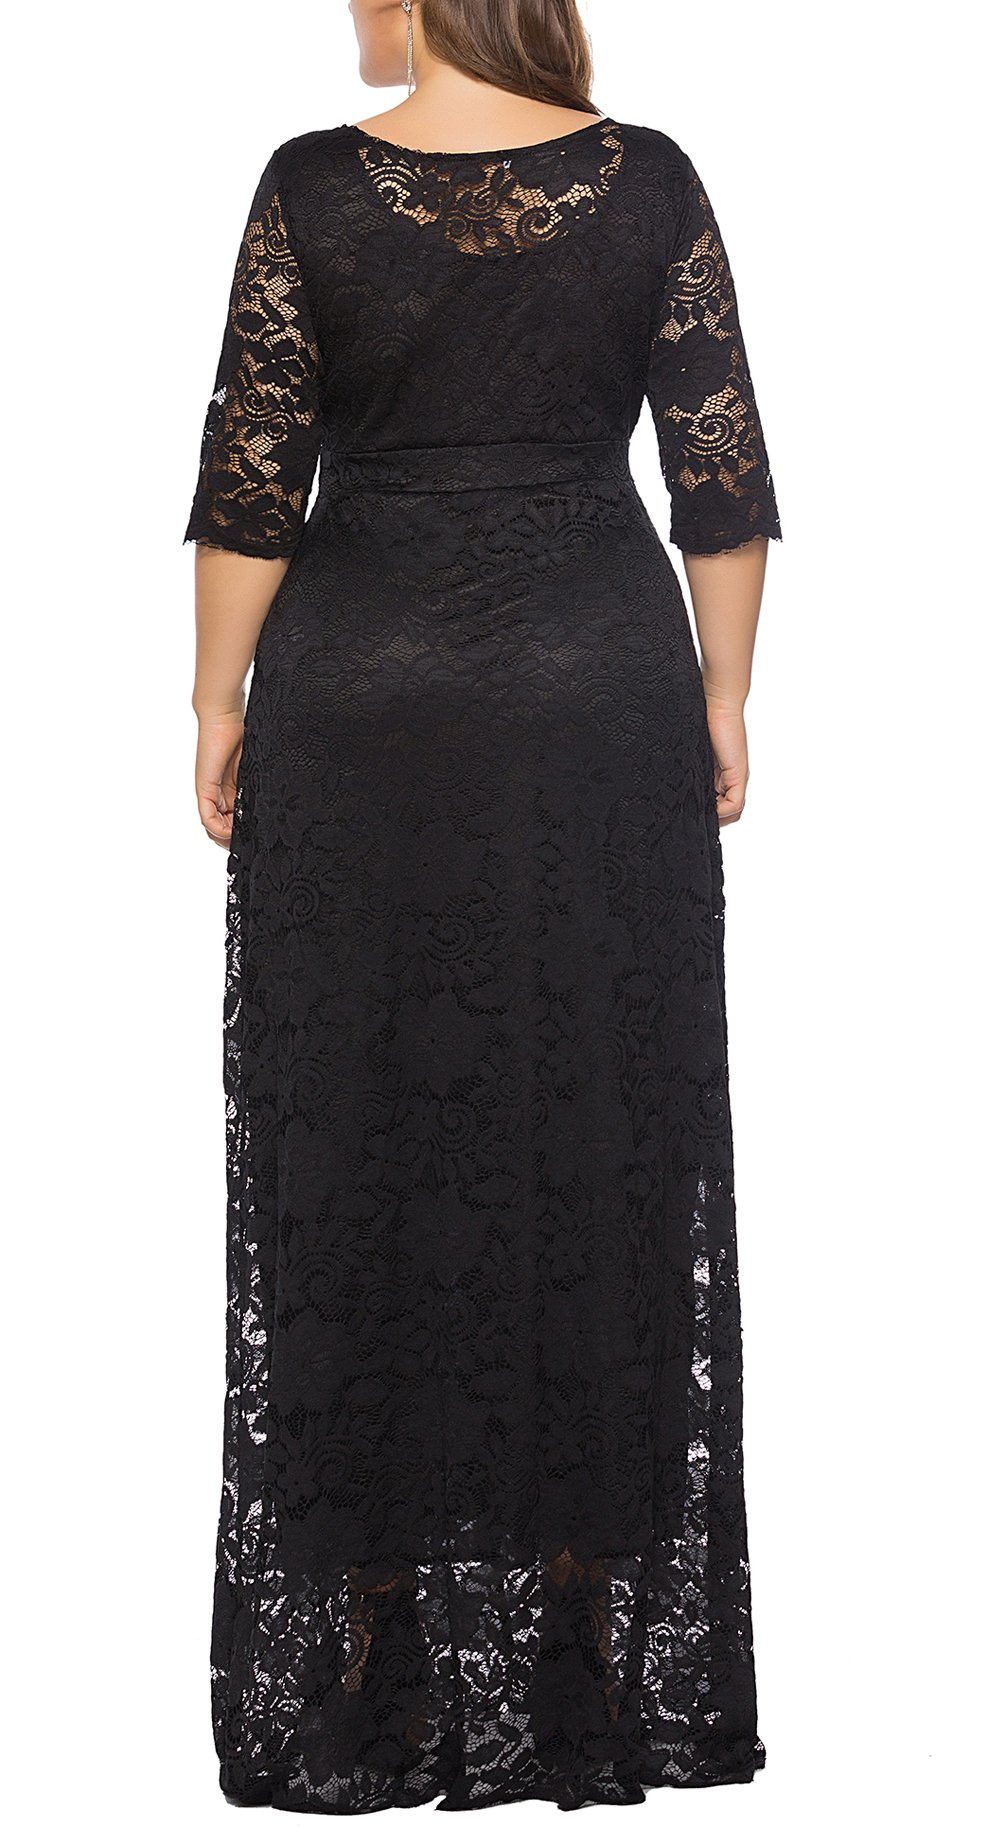 02eaaa47b9b Home Sizes 5x Plus Eternatastic Womens Floral Lace 2 3 Sleeves Maxi Dress  Evening Party Long Dress 5XL Black.   